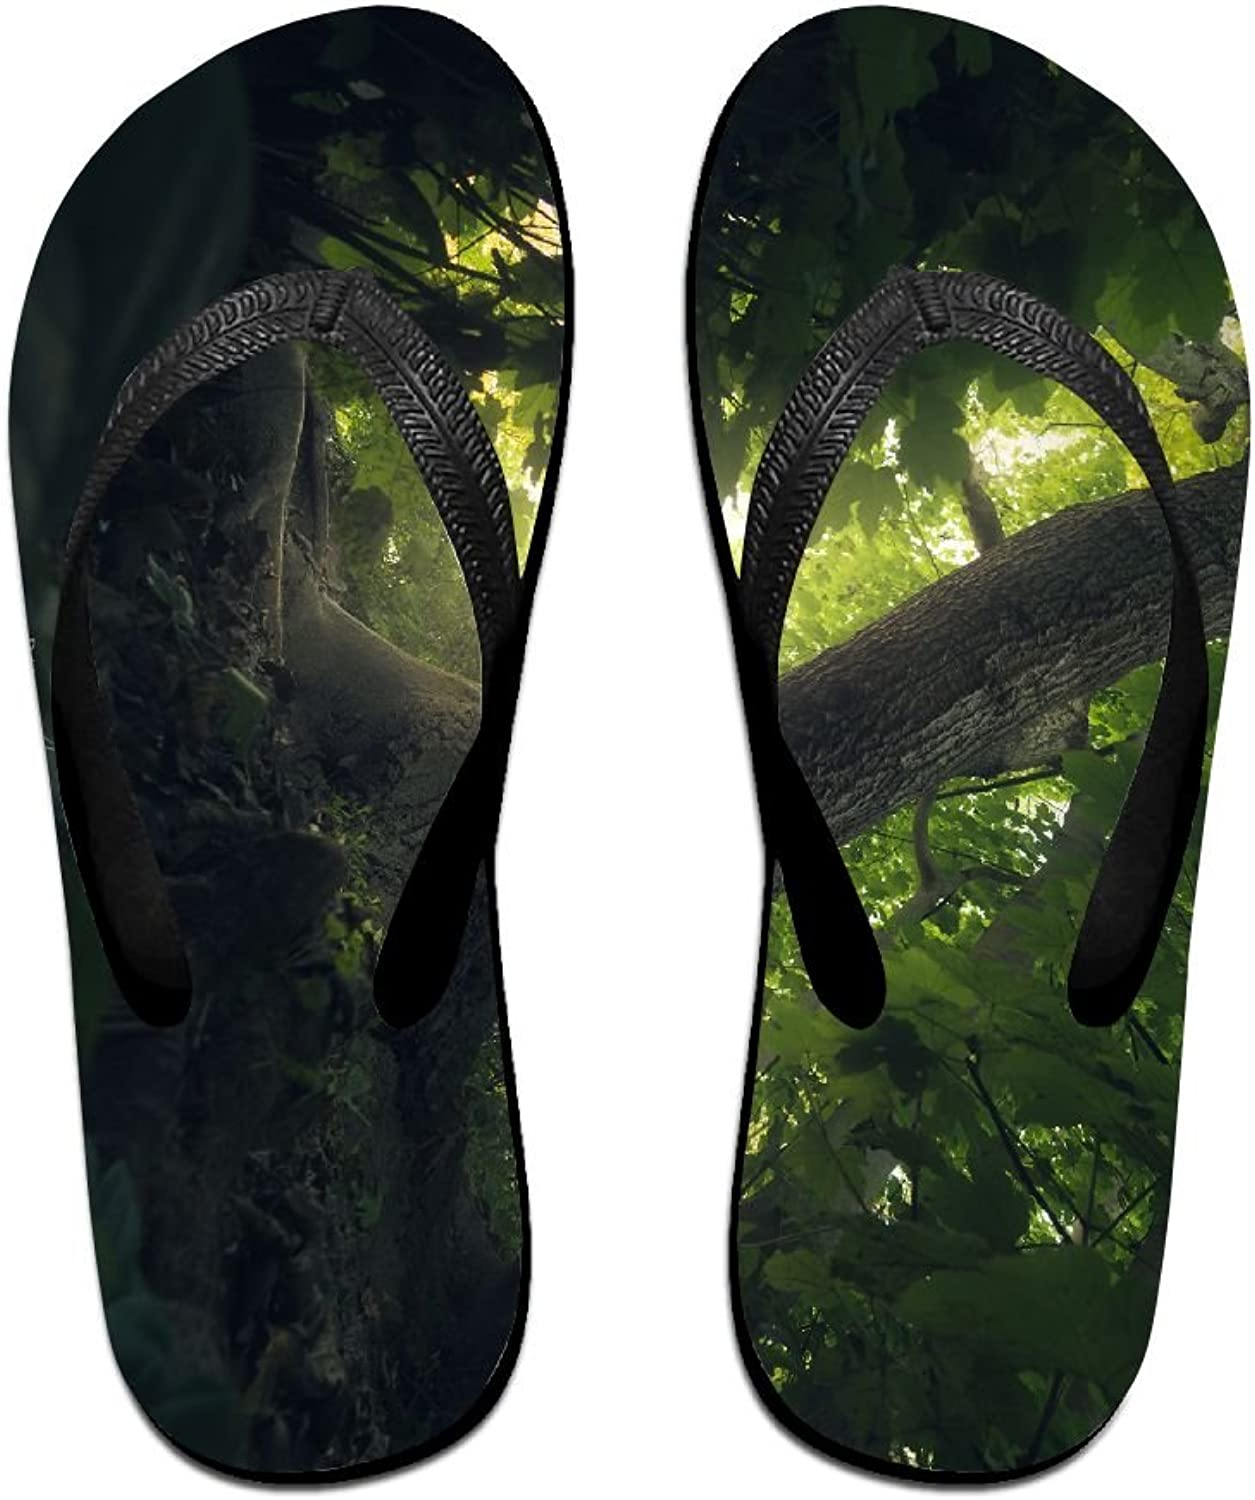 Unisex V Flip Flops Daniel Laan Dark Nature Trees Forest Personalized Summer Slipper